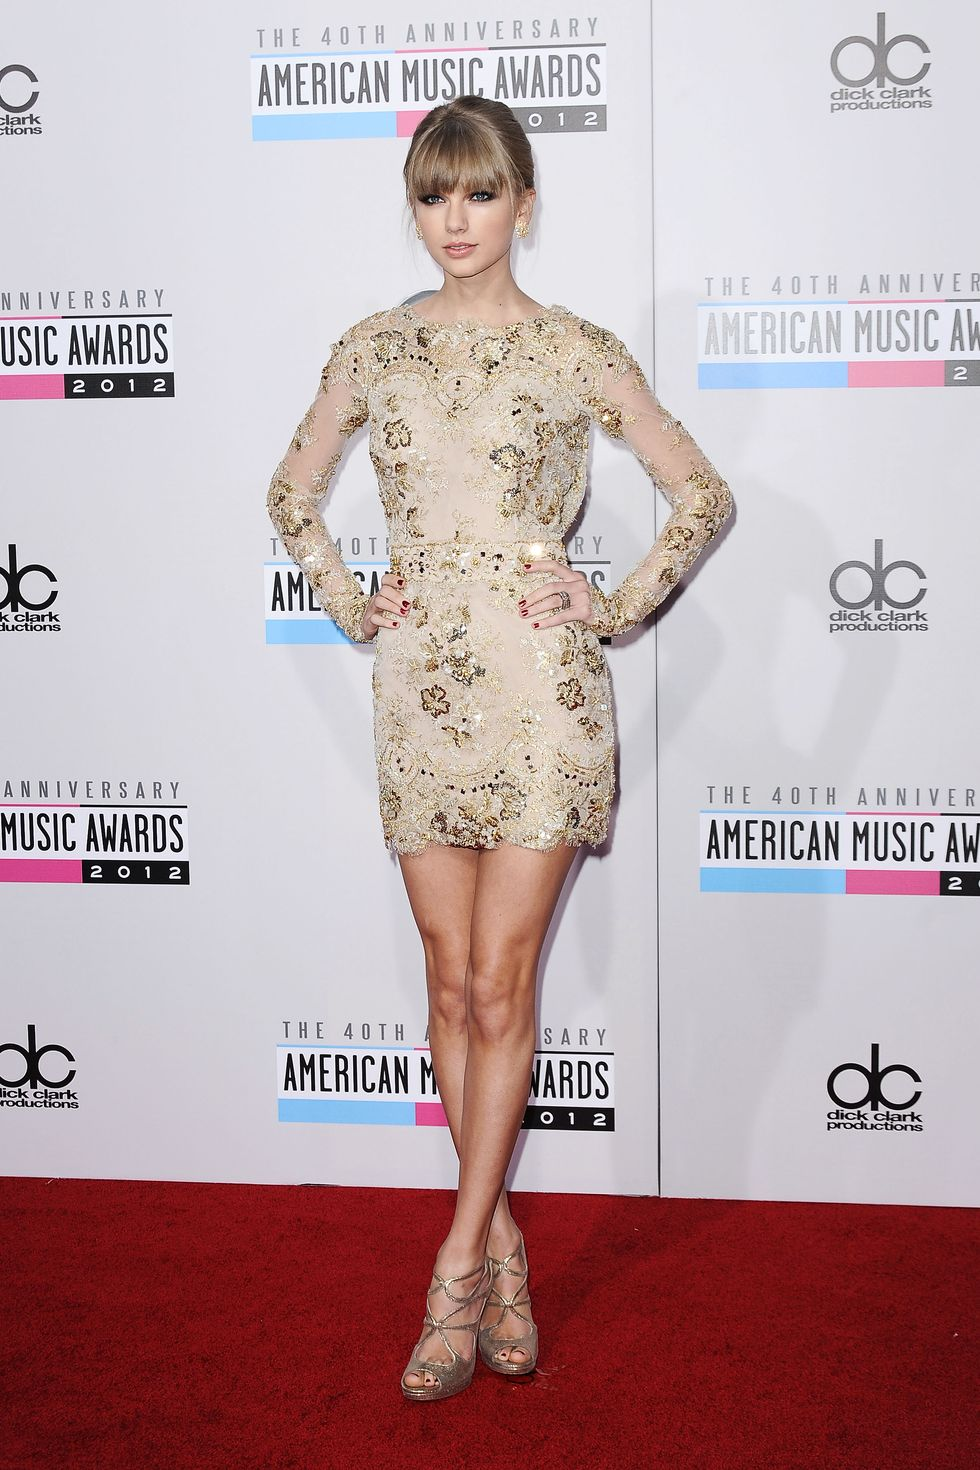 He Said, She Said: Rating the Fashion at the 40th Annual American Music Awards